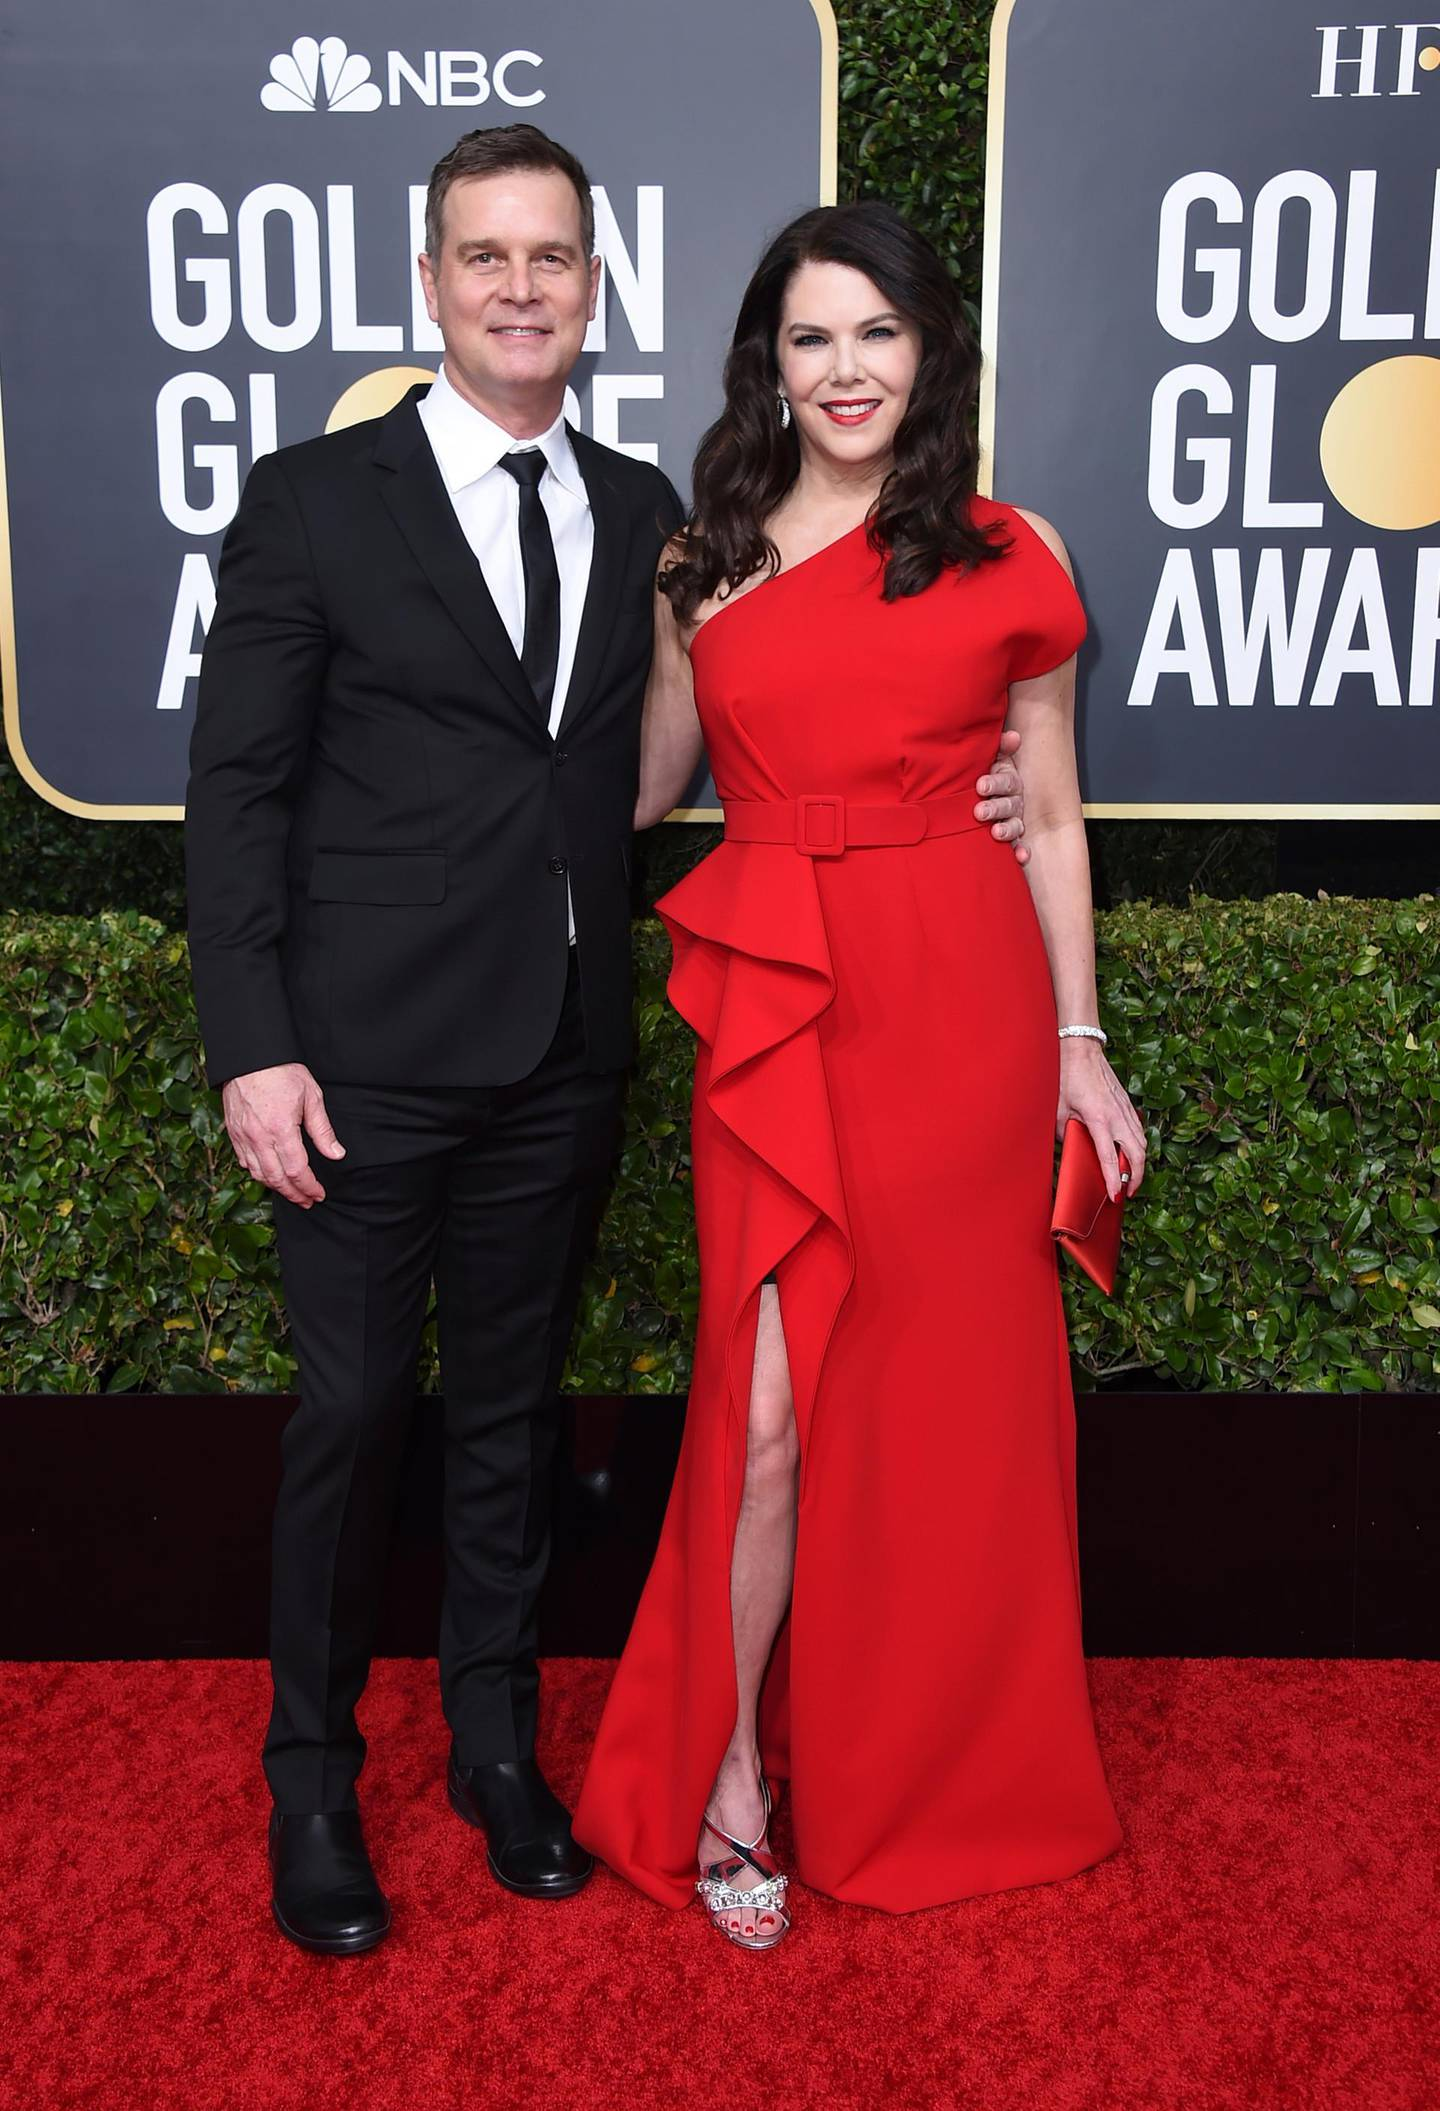 Peter Krause, left, and Lauren Graham arrive at the 77th annual Golden Globe Awards at the Beverly Hilton Hotel on Sunday, Jan. 5, 2020, in Beverly Hills, Calif. (Photo by Jordan Strauss/Invision/AP)